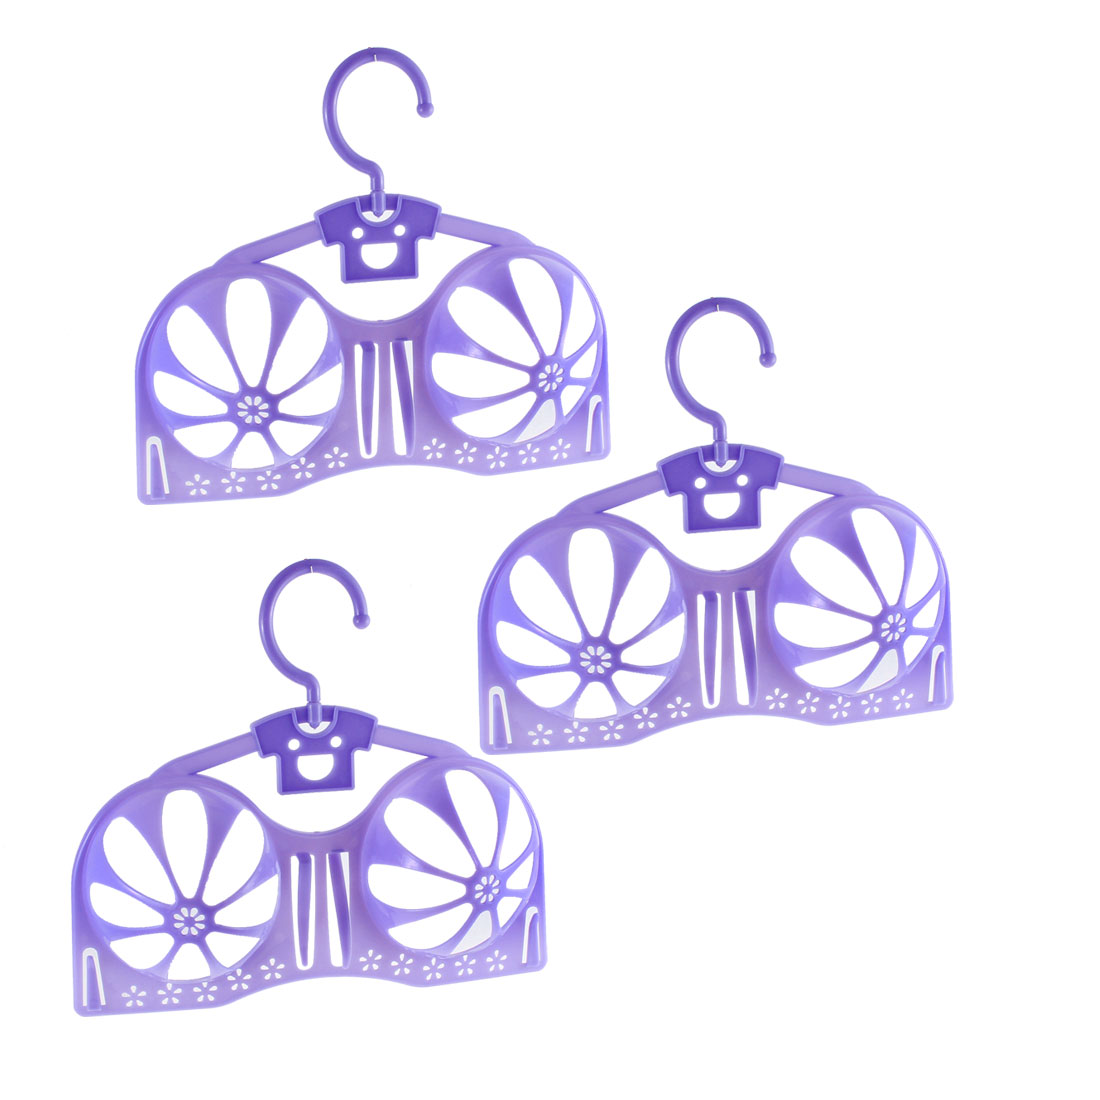 Bra Brassiere Lingerie Laundry Hanger Dryer Holder Rack Storage Support Purple 3pcs